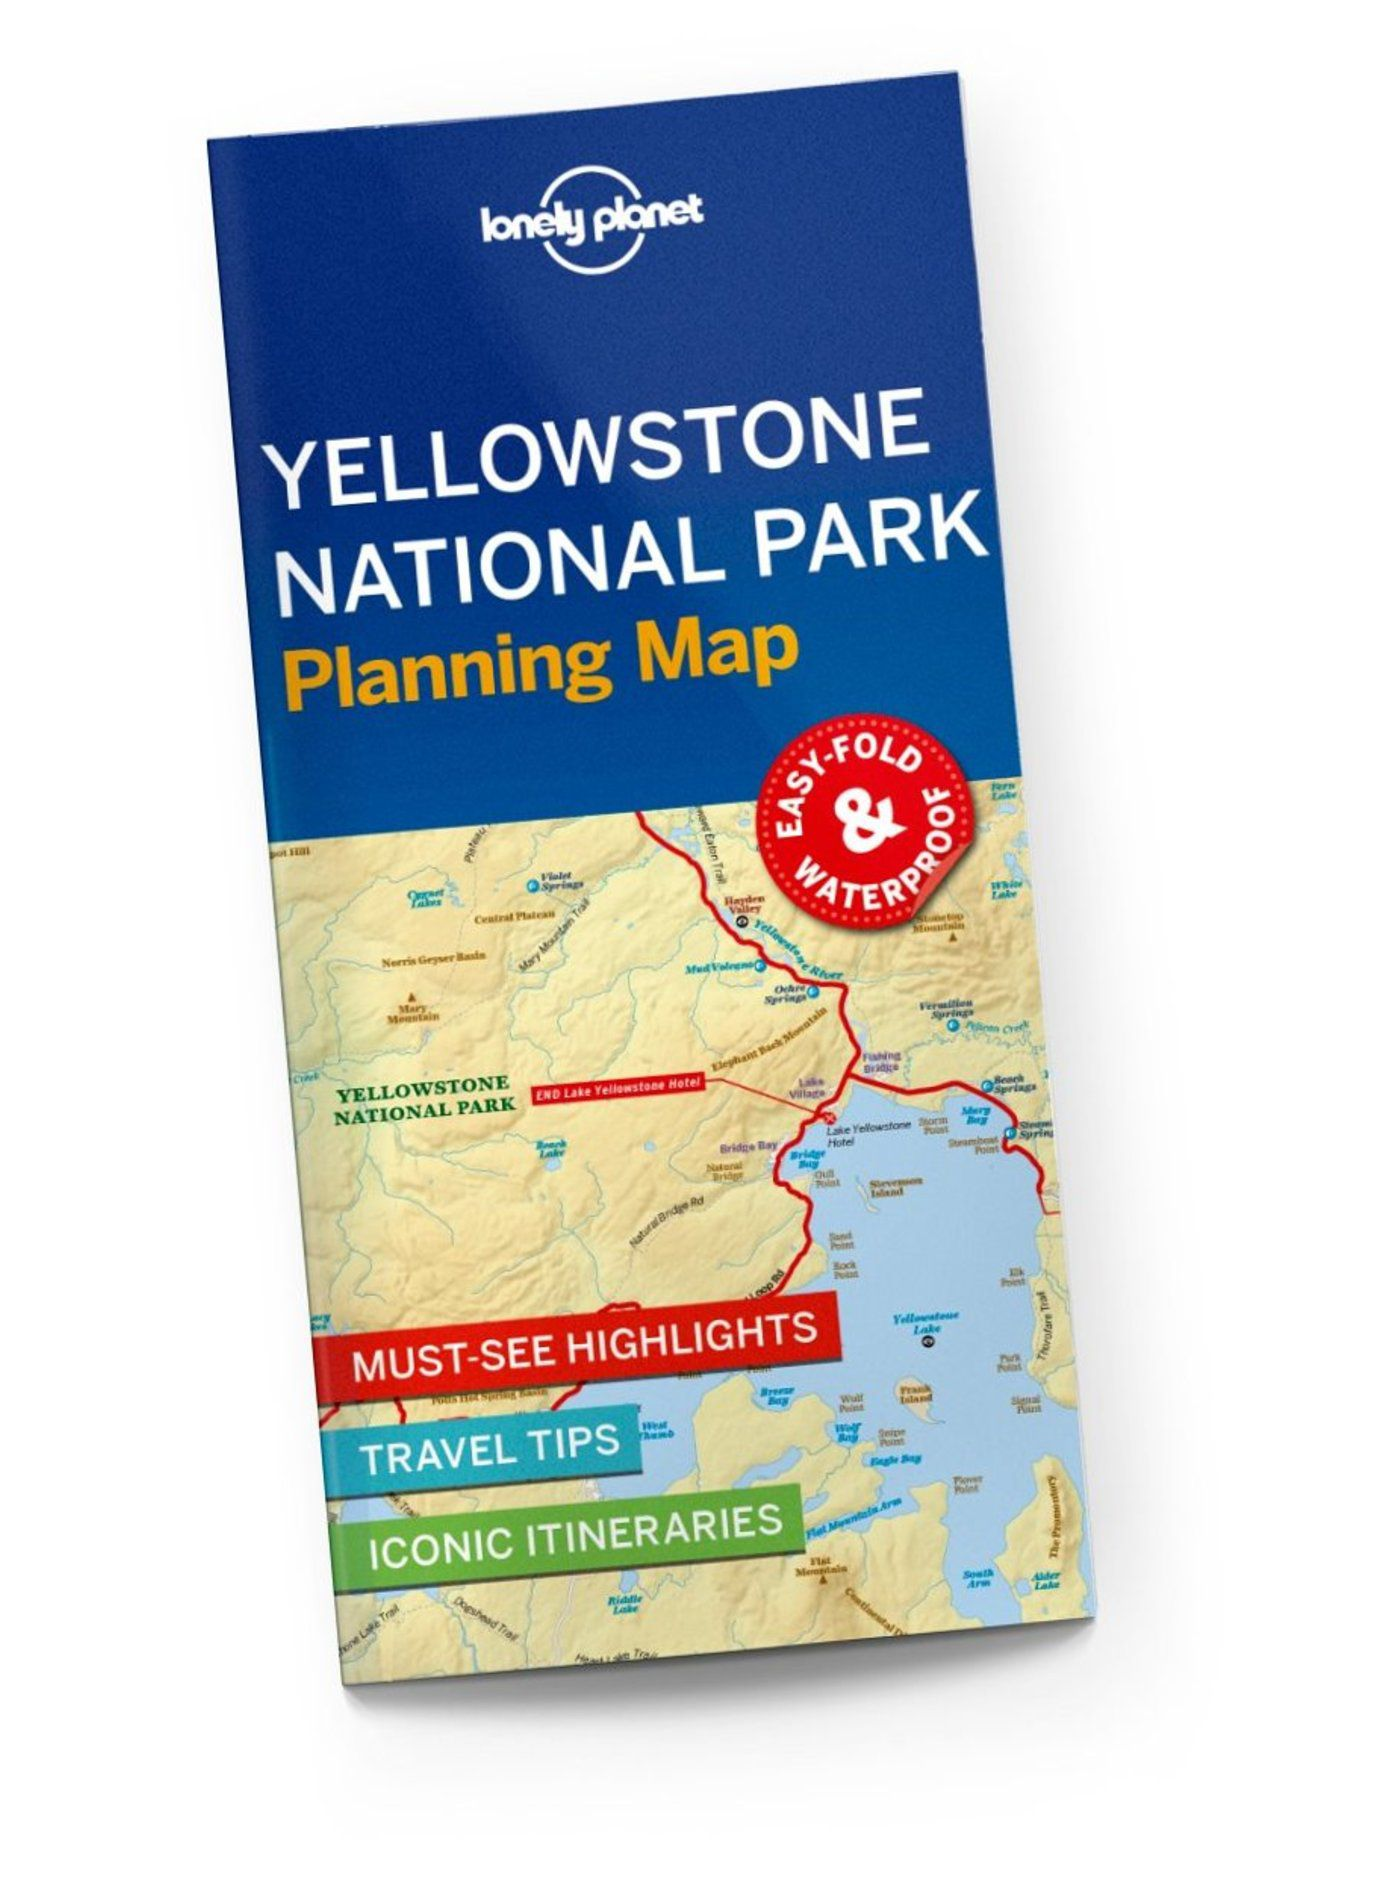 Yellowstone National Park Planning Map Lonely Planet Us - Yellowstone-us-map